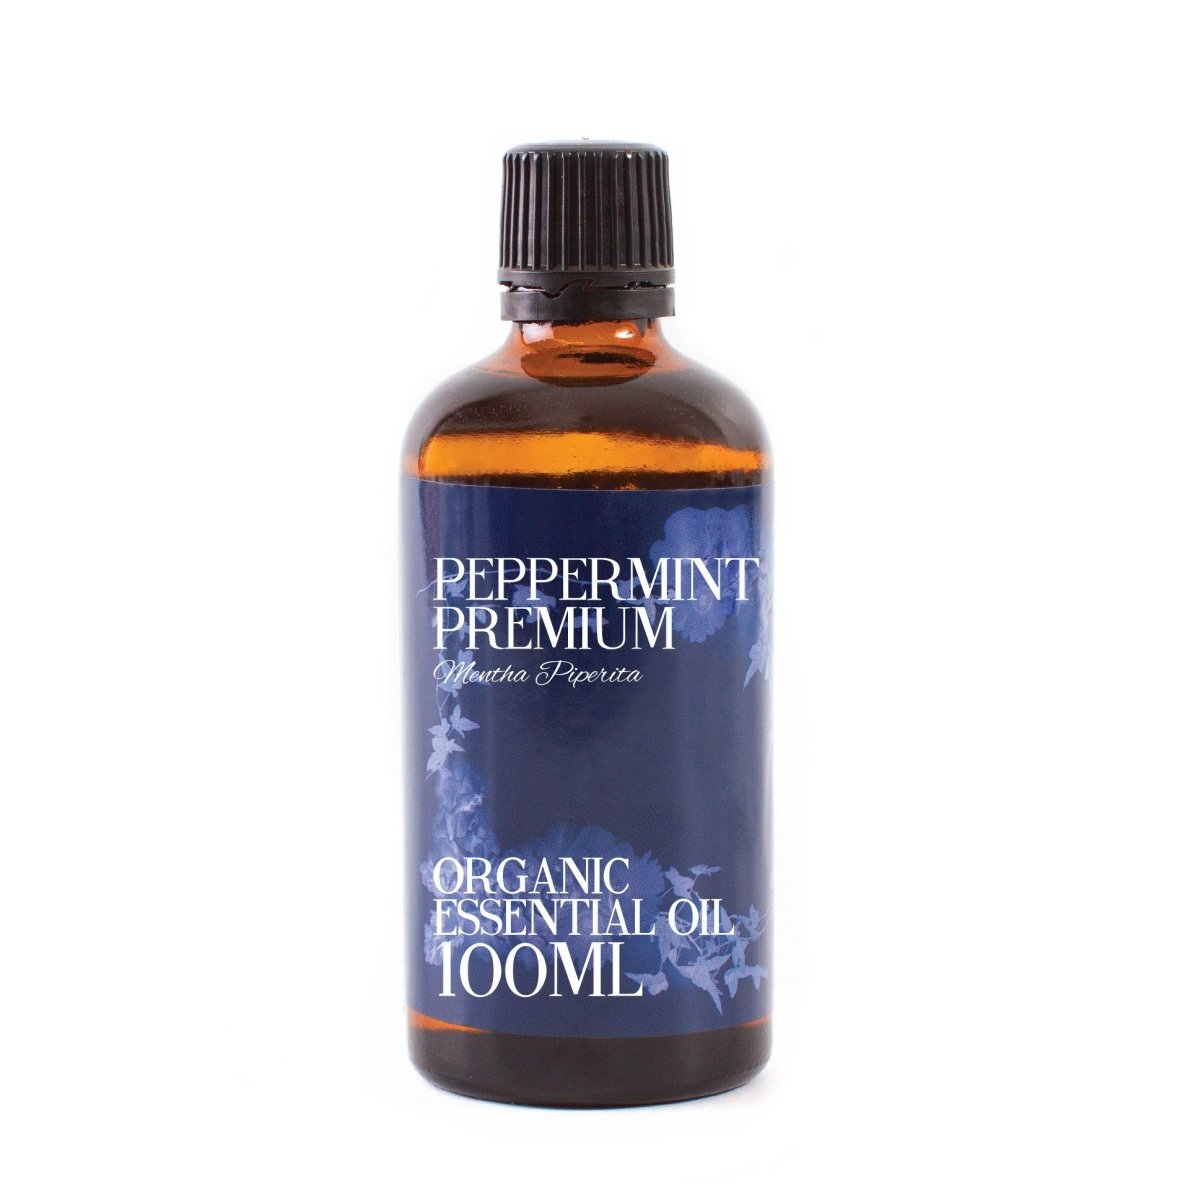 Peppermint Premium Organic Essential Oil - Mystic Moments UK